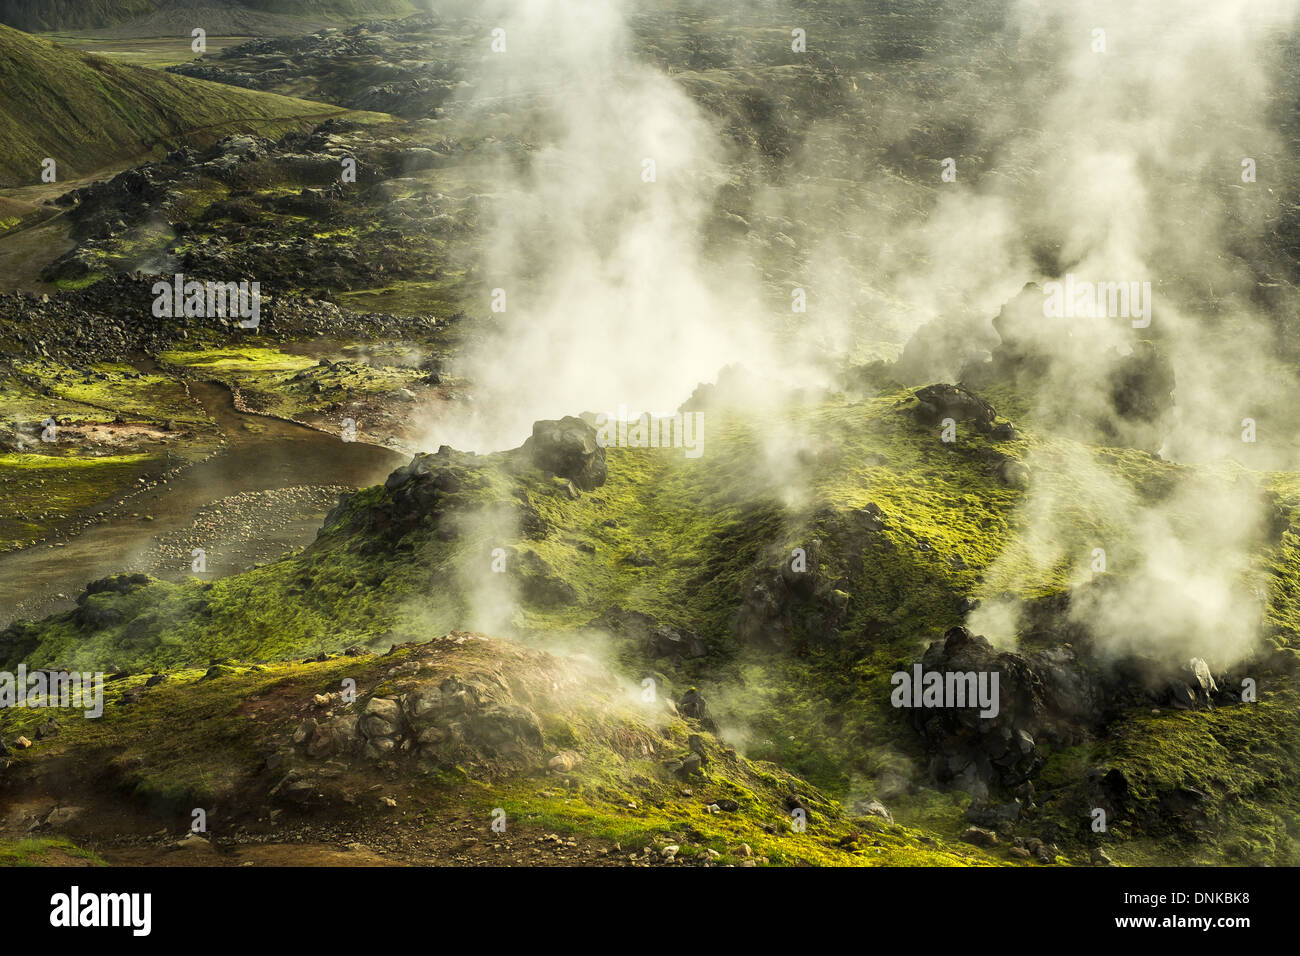 An active geothermal area with multiple steam vents, Landmannalaugar, Iceland Stock Photo